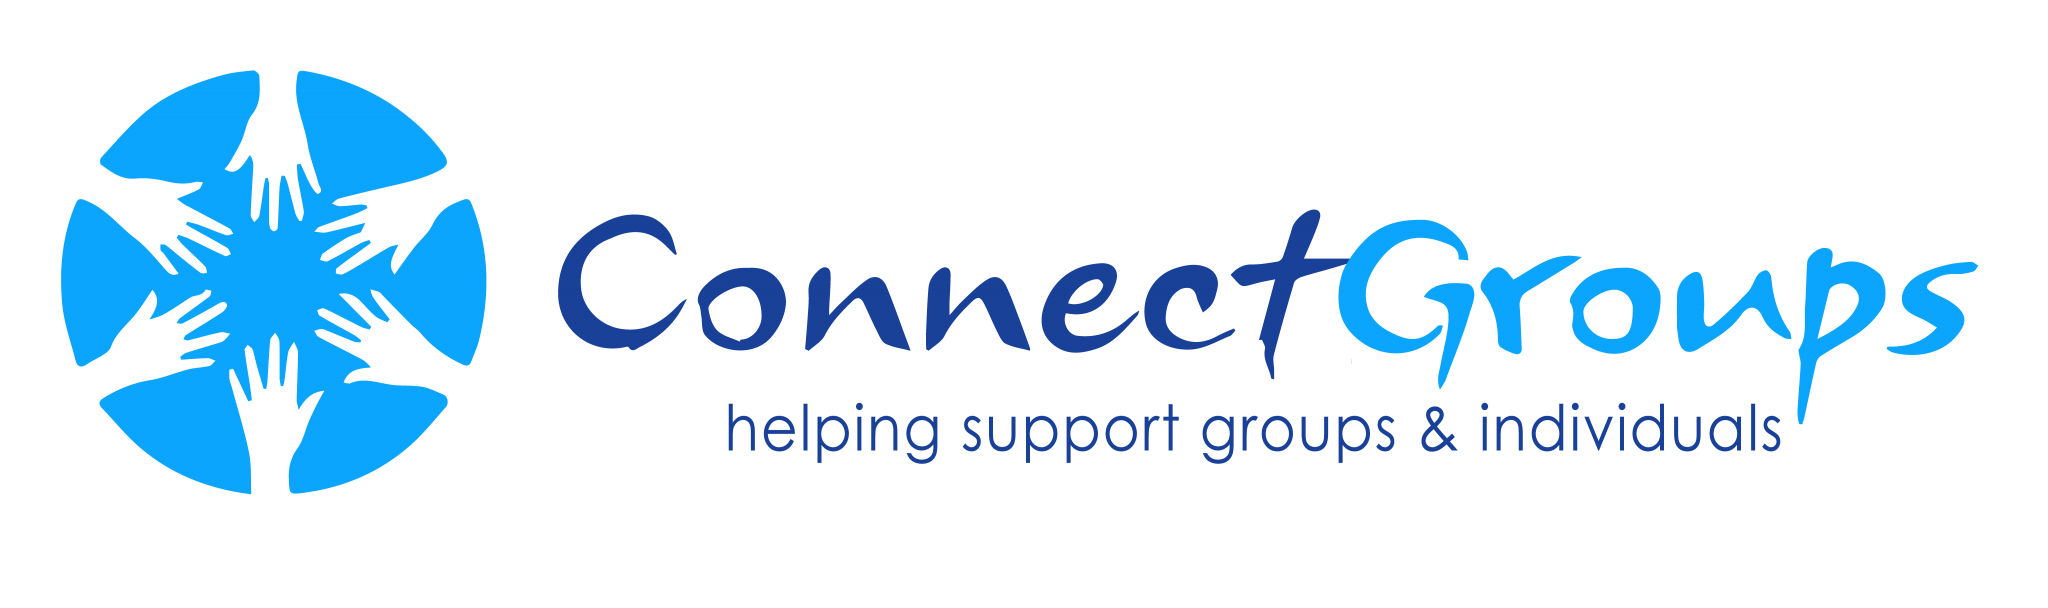 ConnectGroups